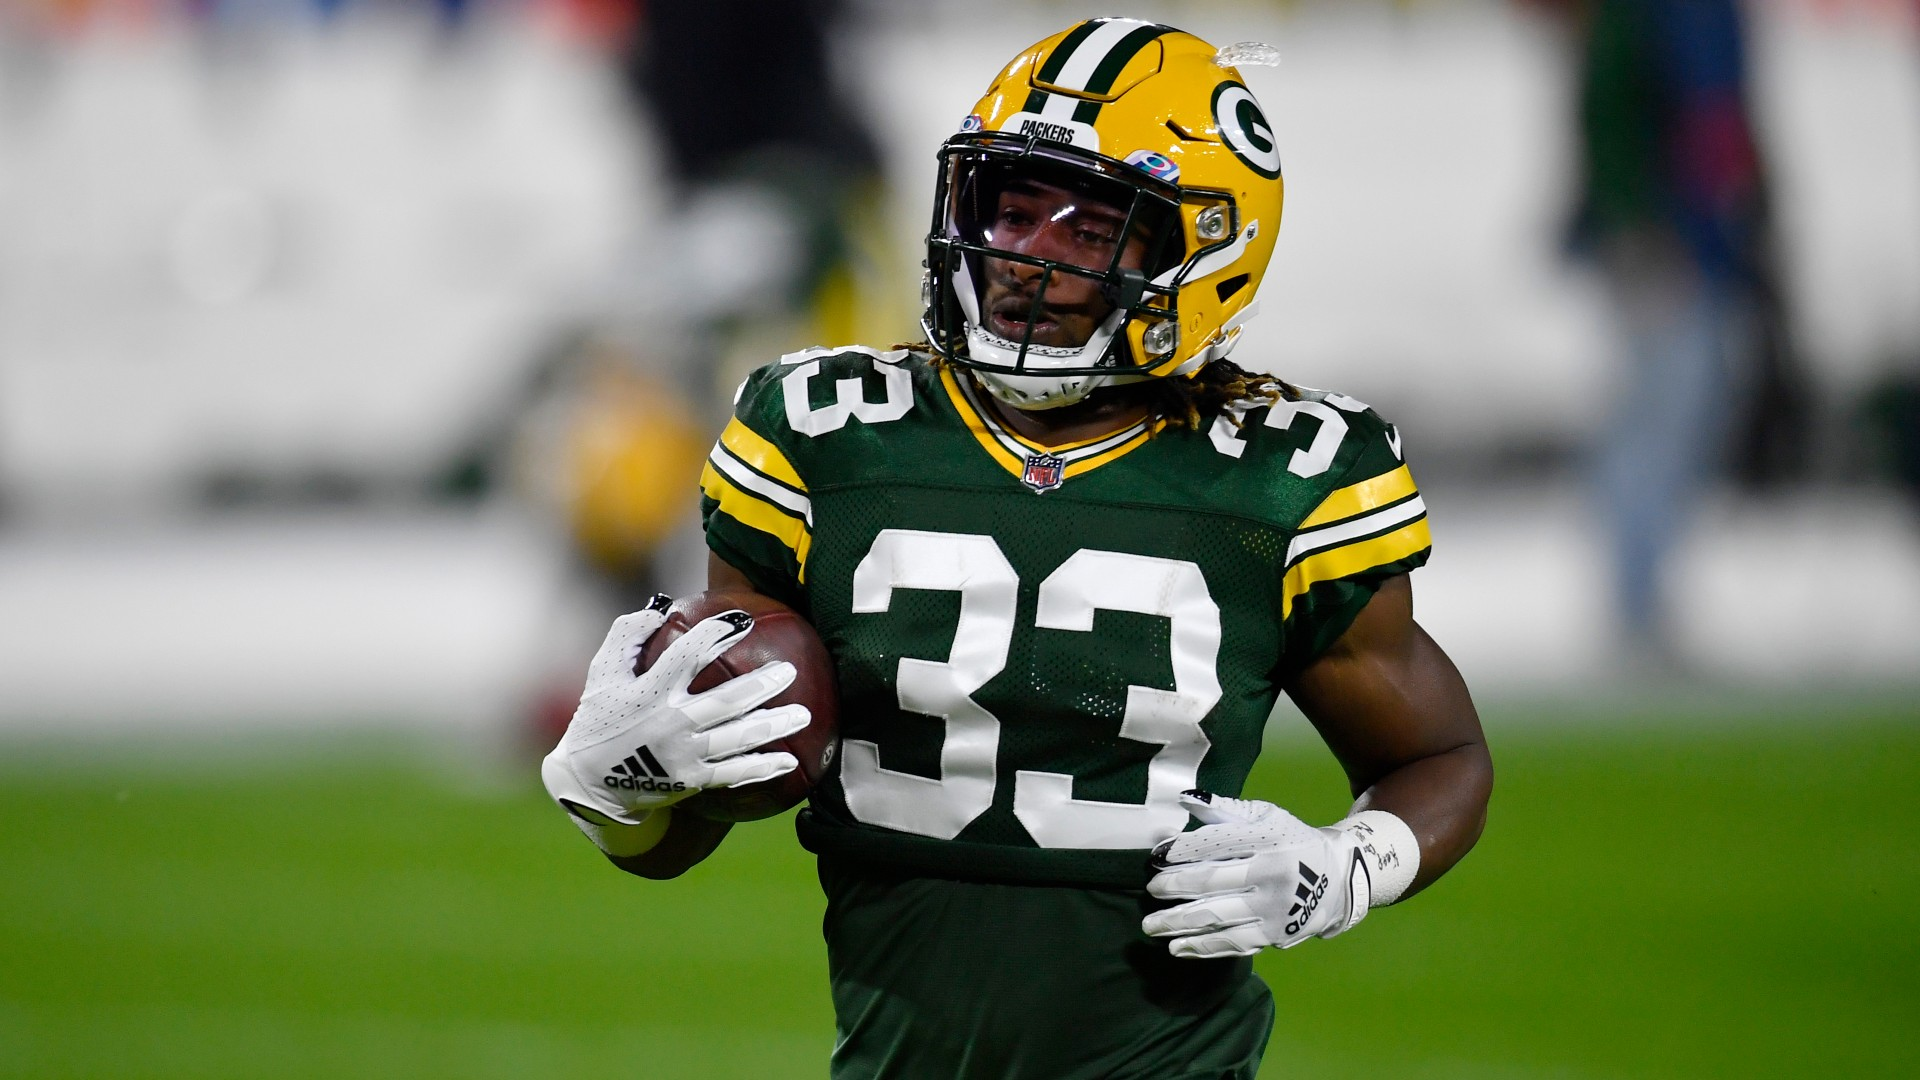 Week 7 Nfl Injury Report Latest Update On Aaron Jones Sam Darnold More Injuries